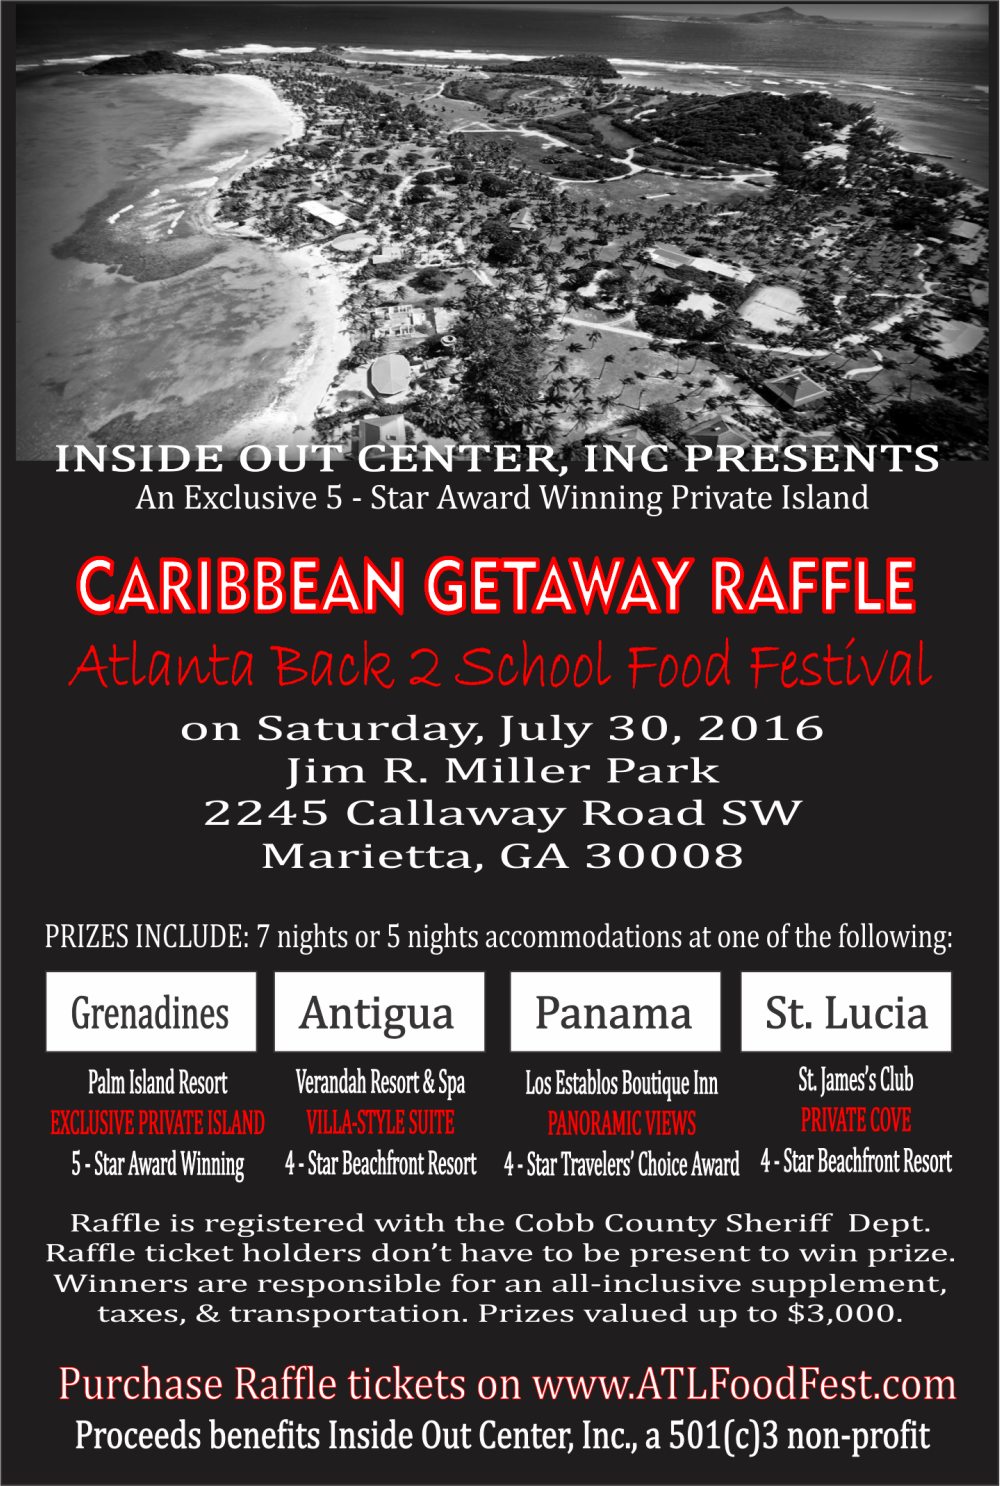 flyer Caribbean vacation giveaway sweepstakes raffle st lucia antigua panama